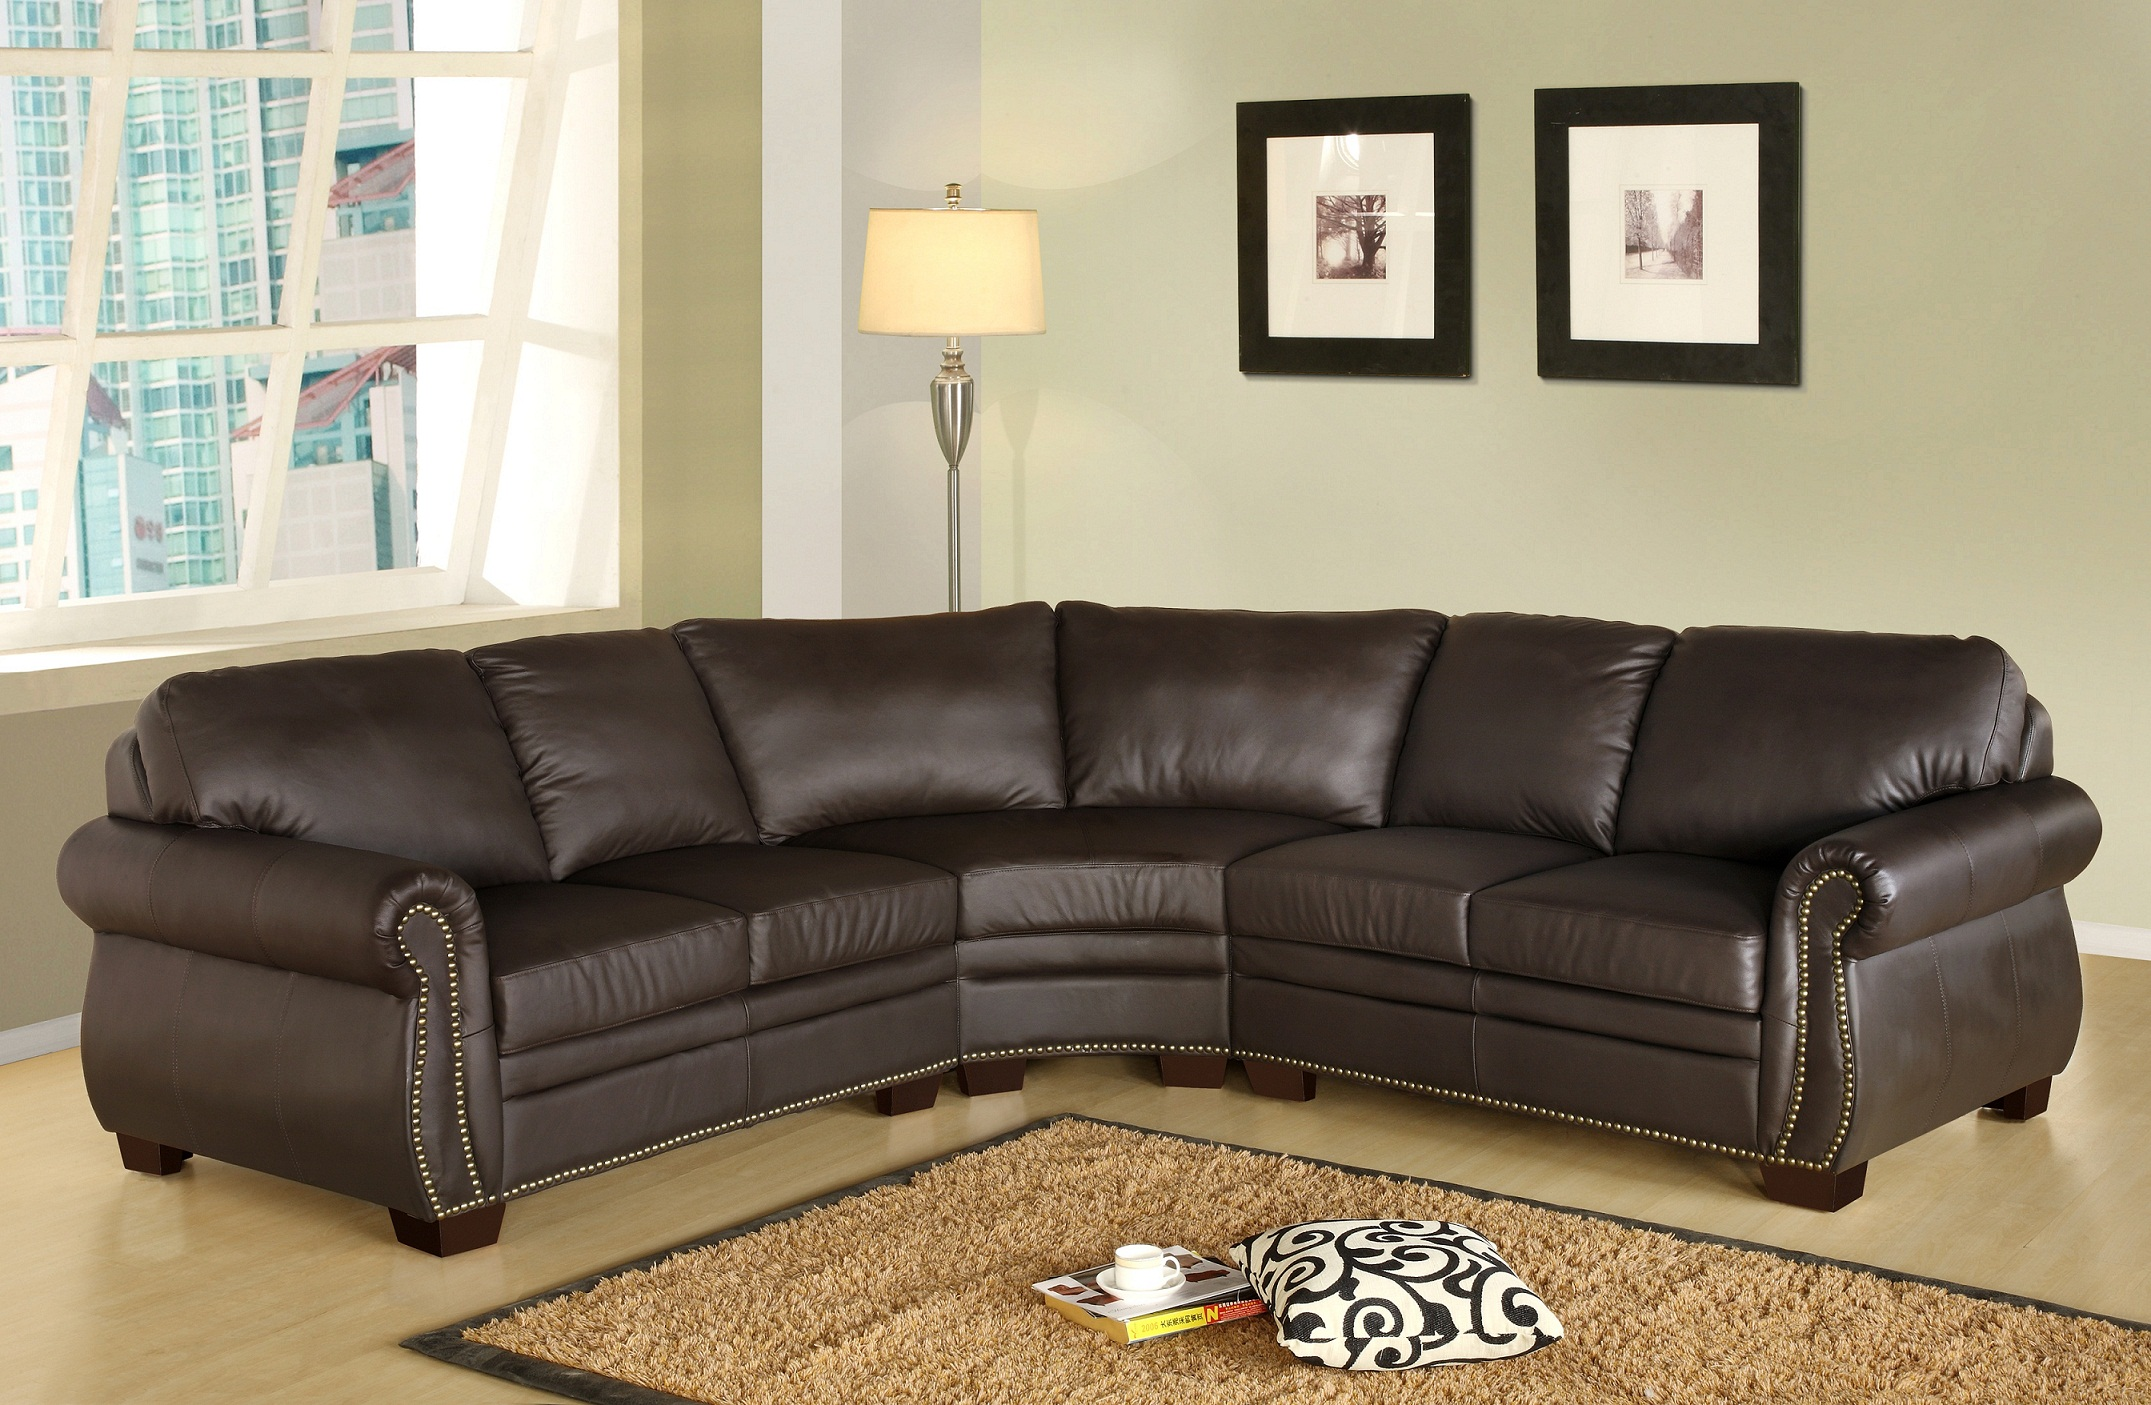 Simple Leather Sectional Brown Sofa Soft Rug